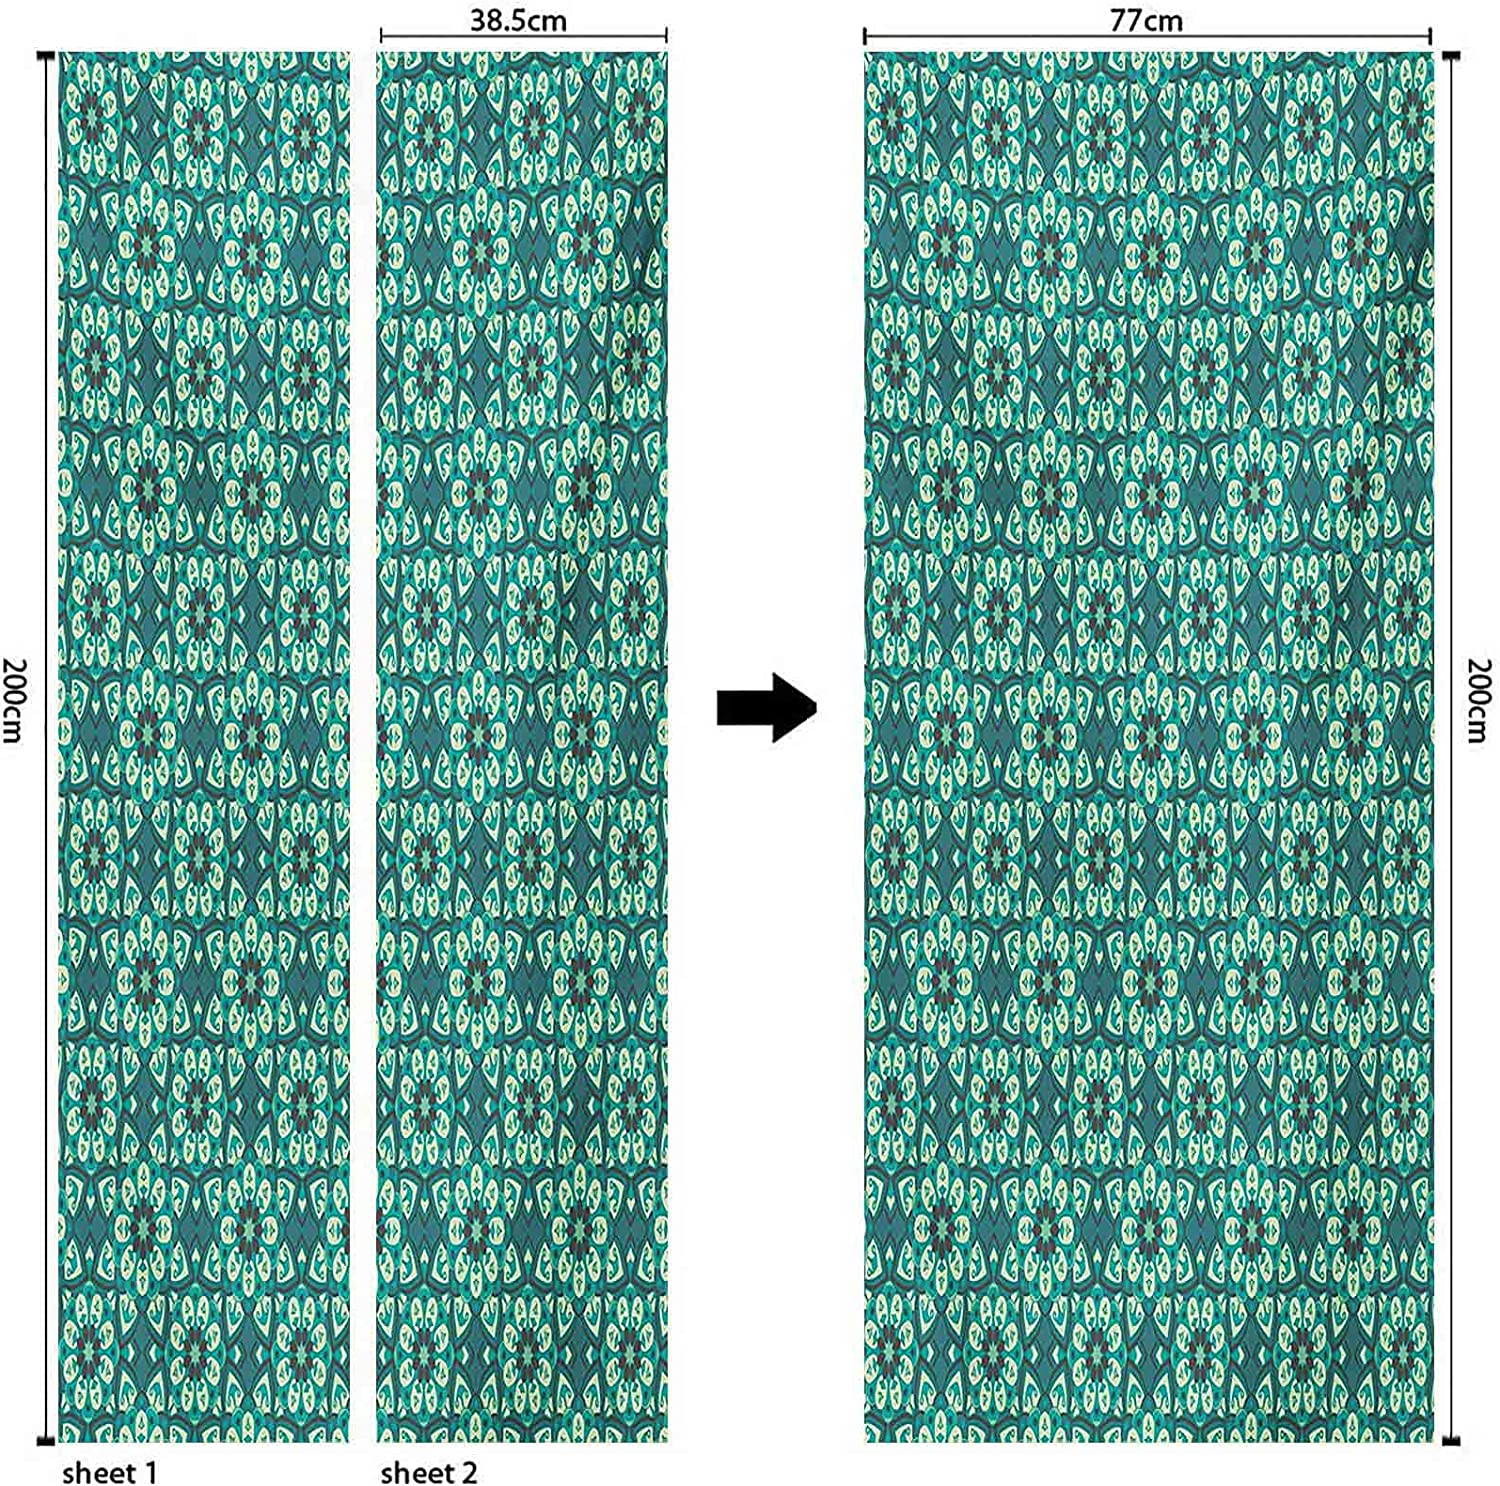 Green Door Mural Removable Quality inspection Max 72% OFF Vinyl Pattern with Kaleidoscopic Blue